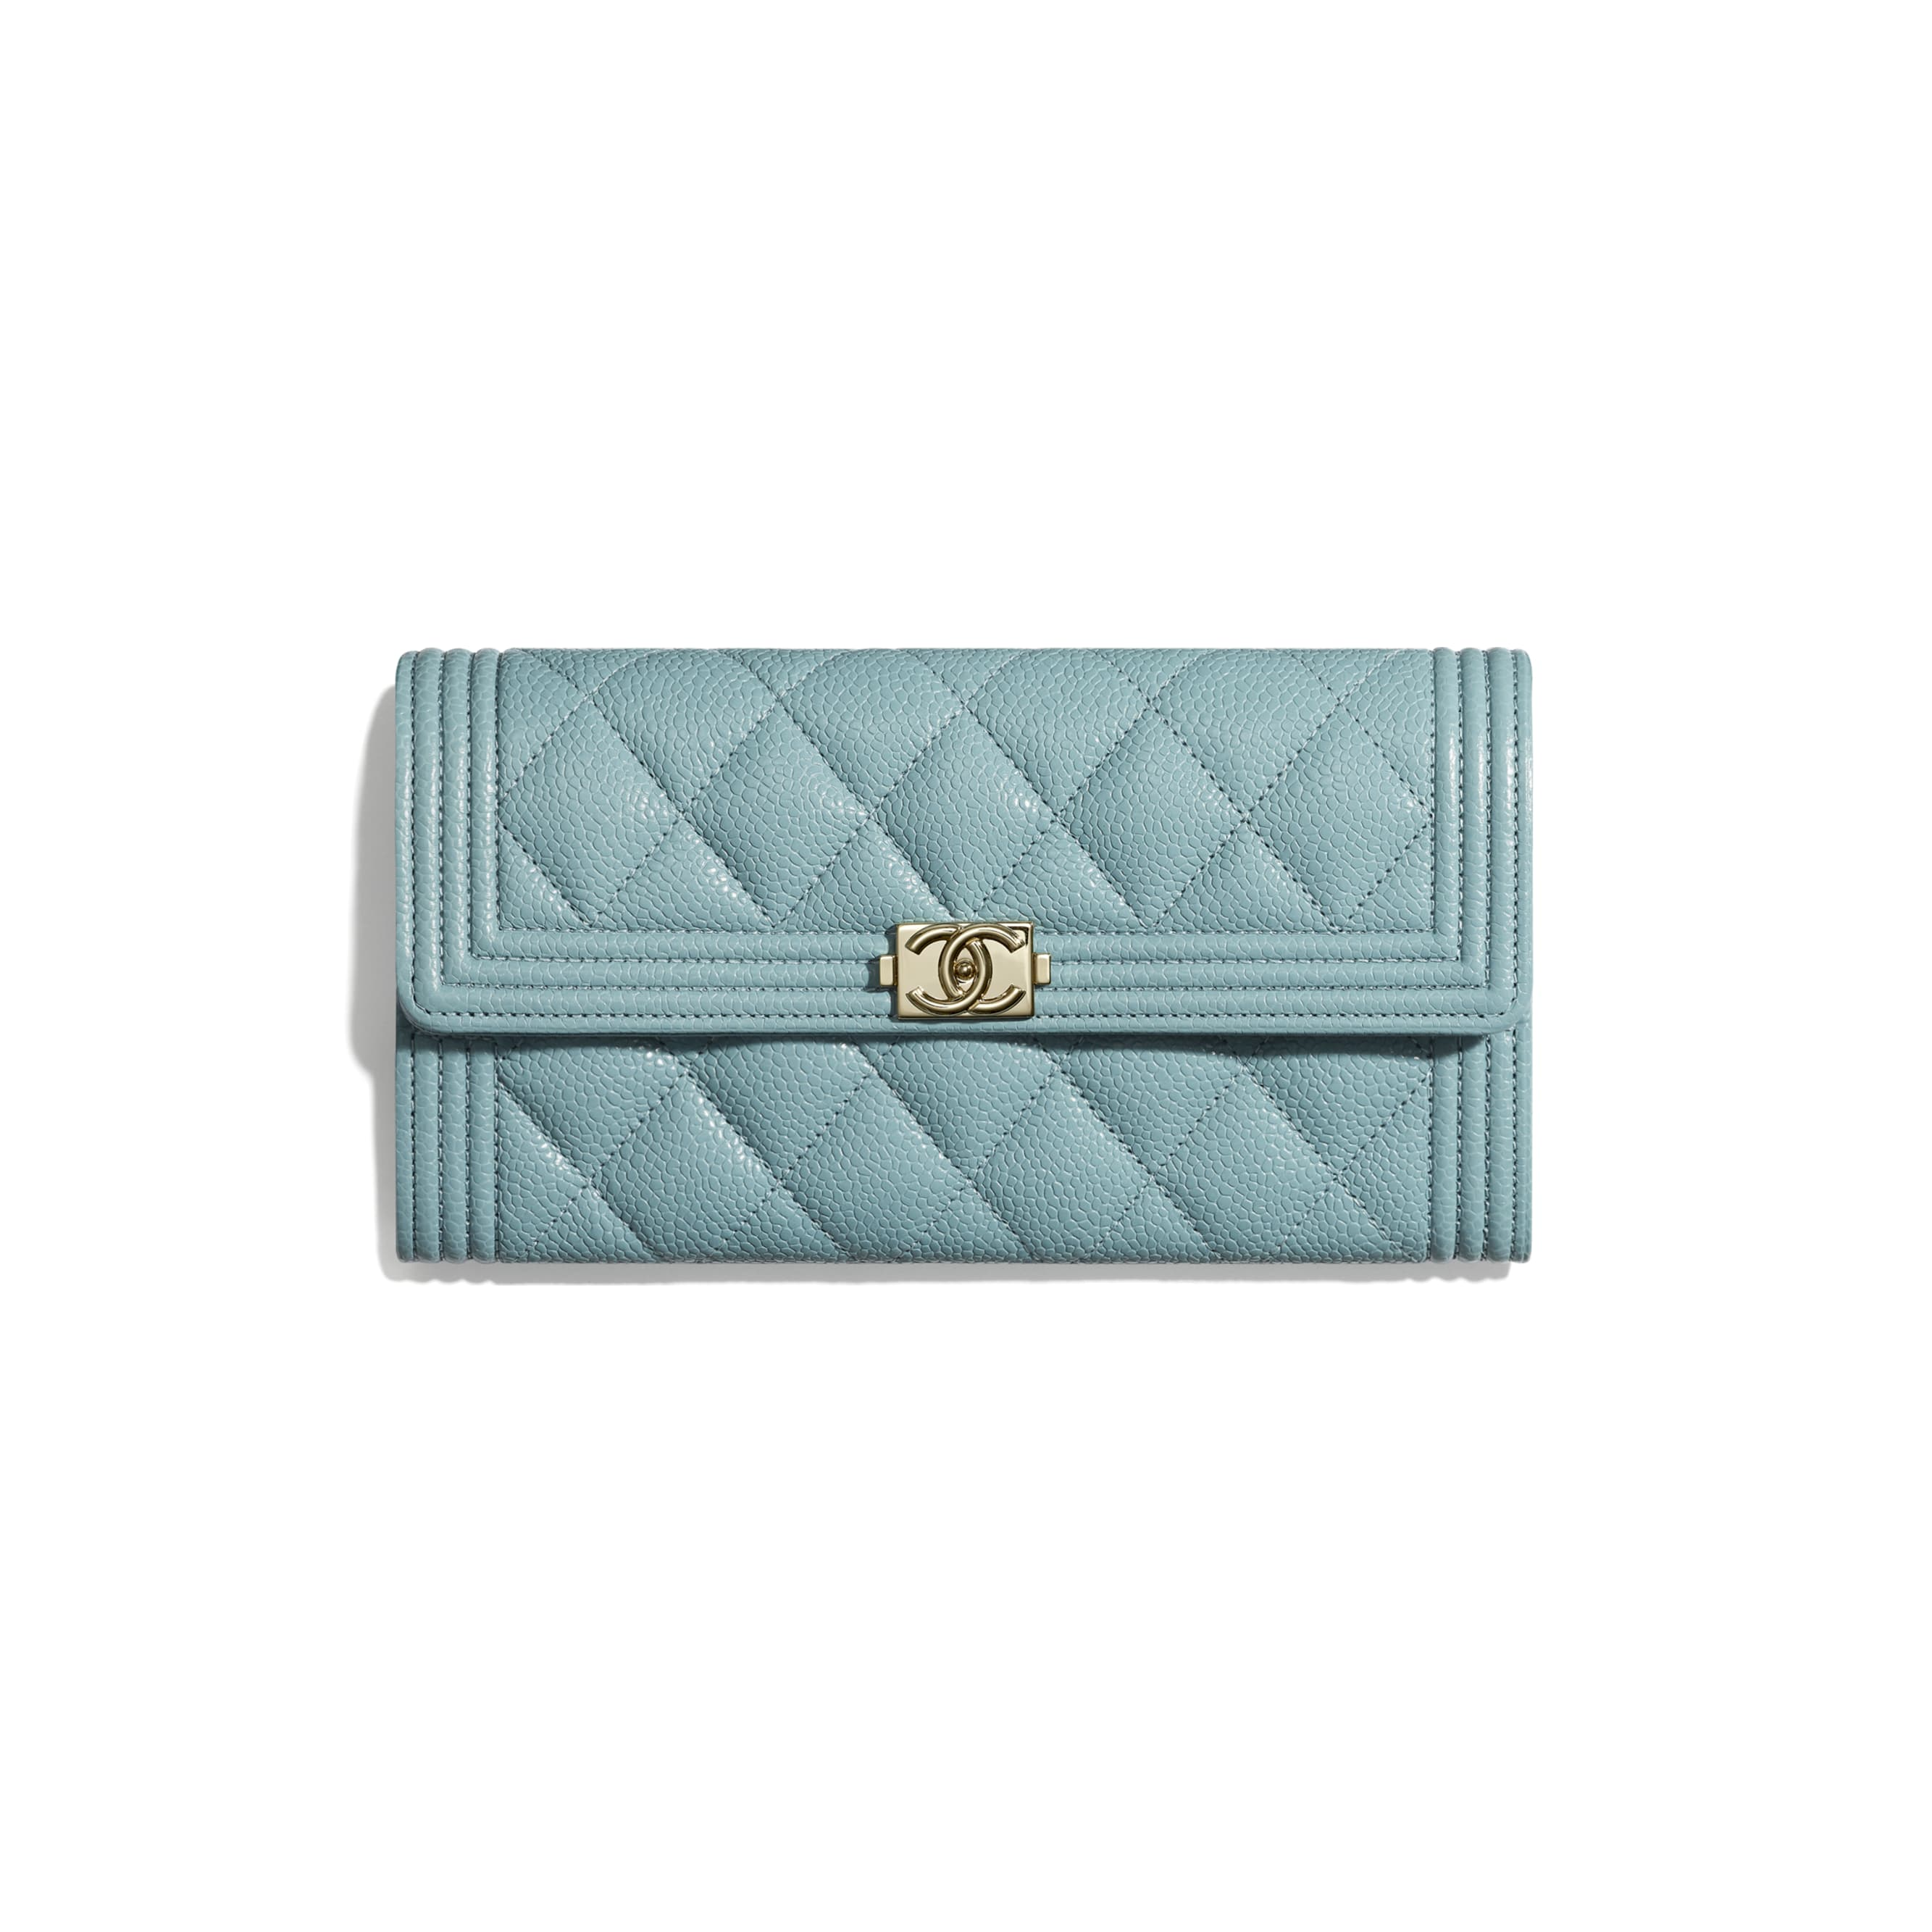 BOY CHANEL Long Flap Wallet - Blue - Grained Shiny Calfskin & Gold-Tone Metal - Default view - see standard sized version